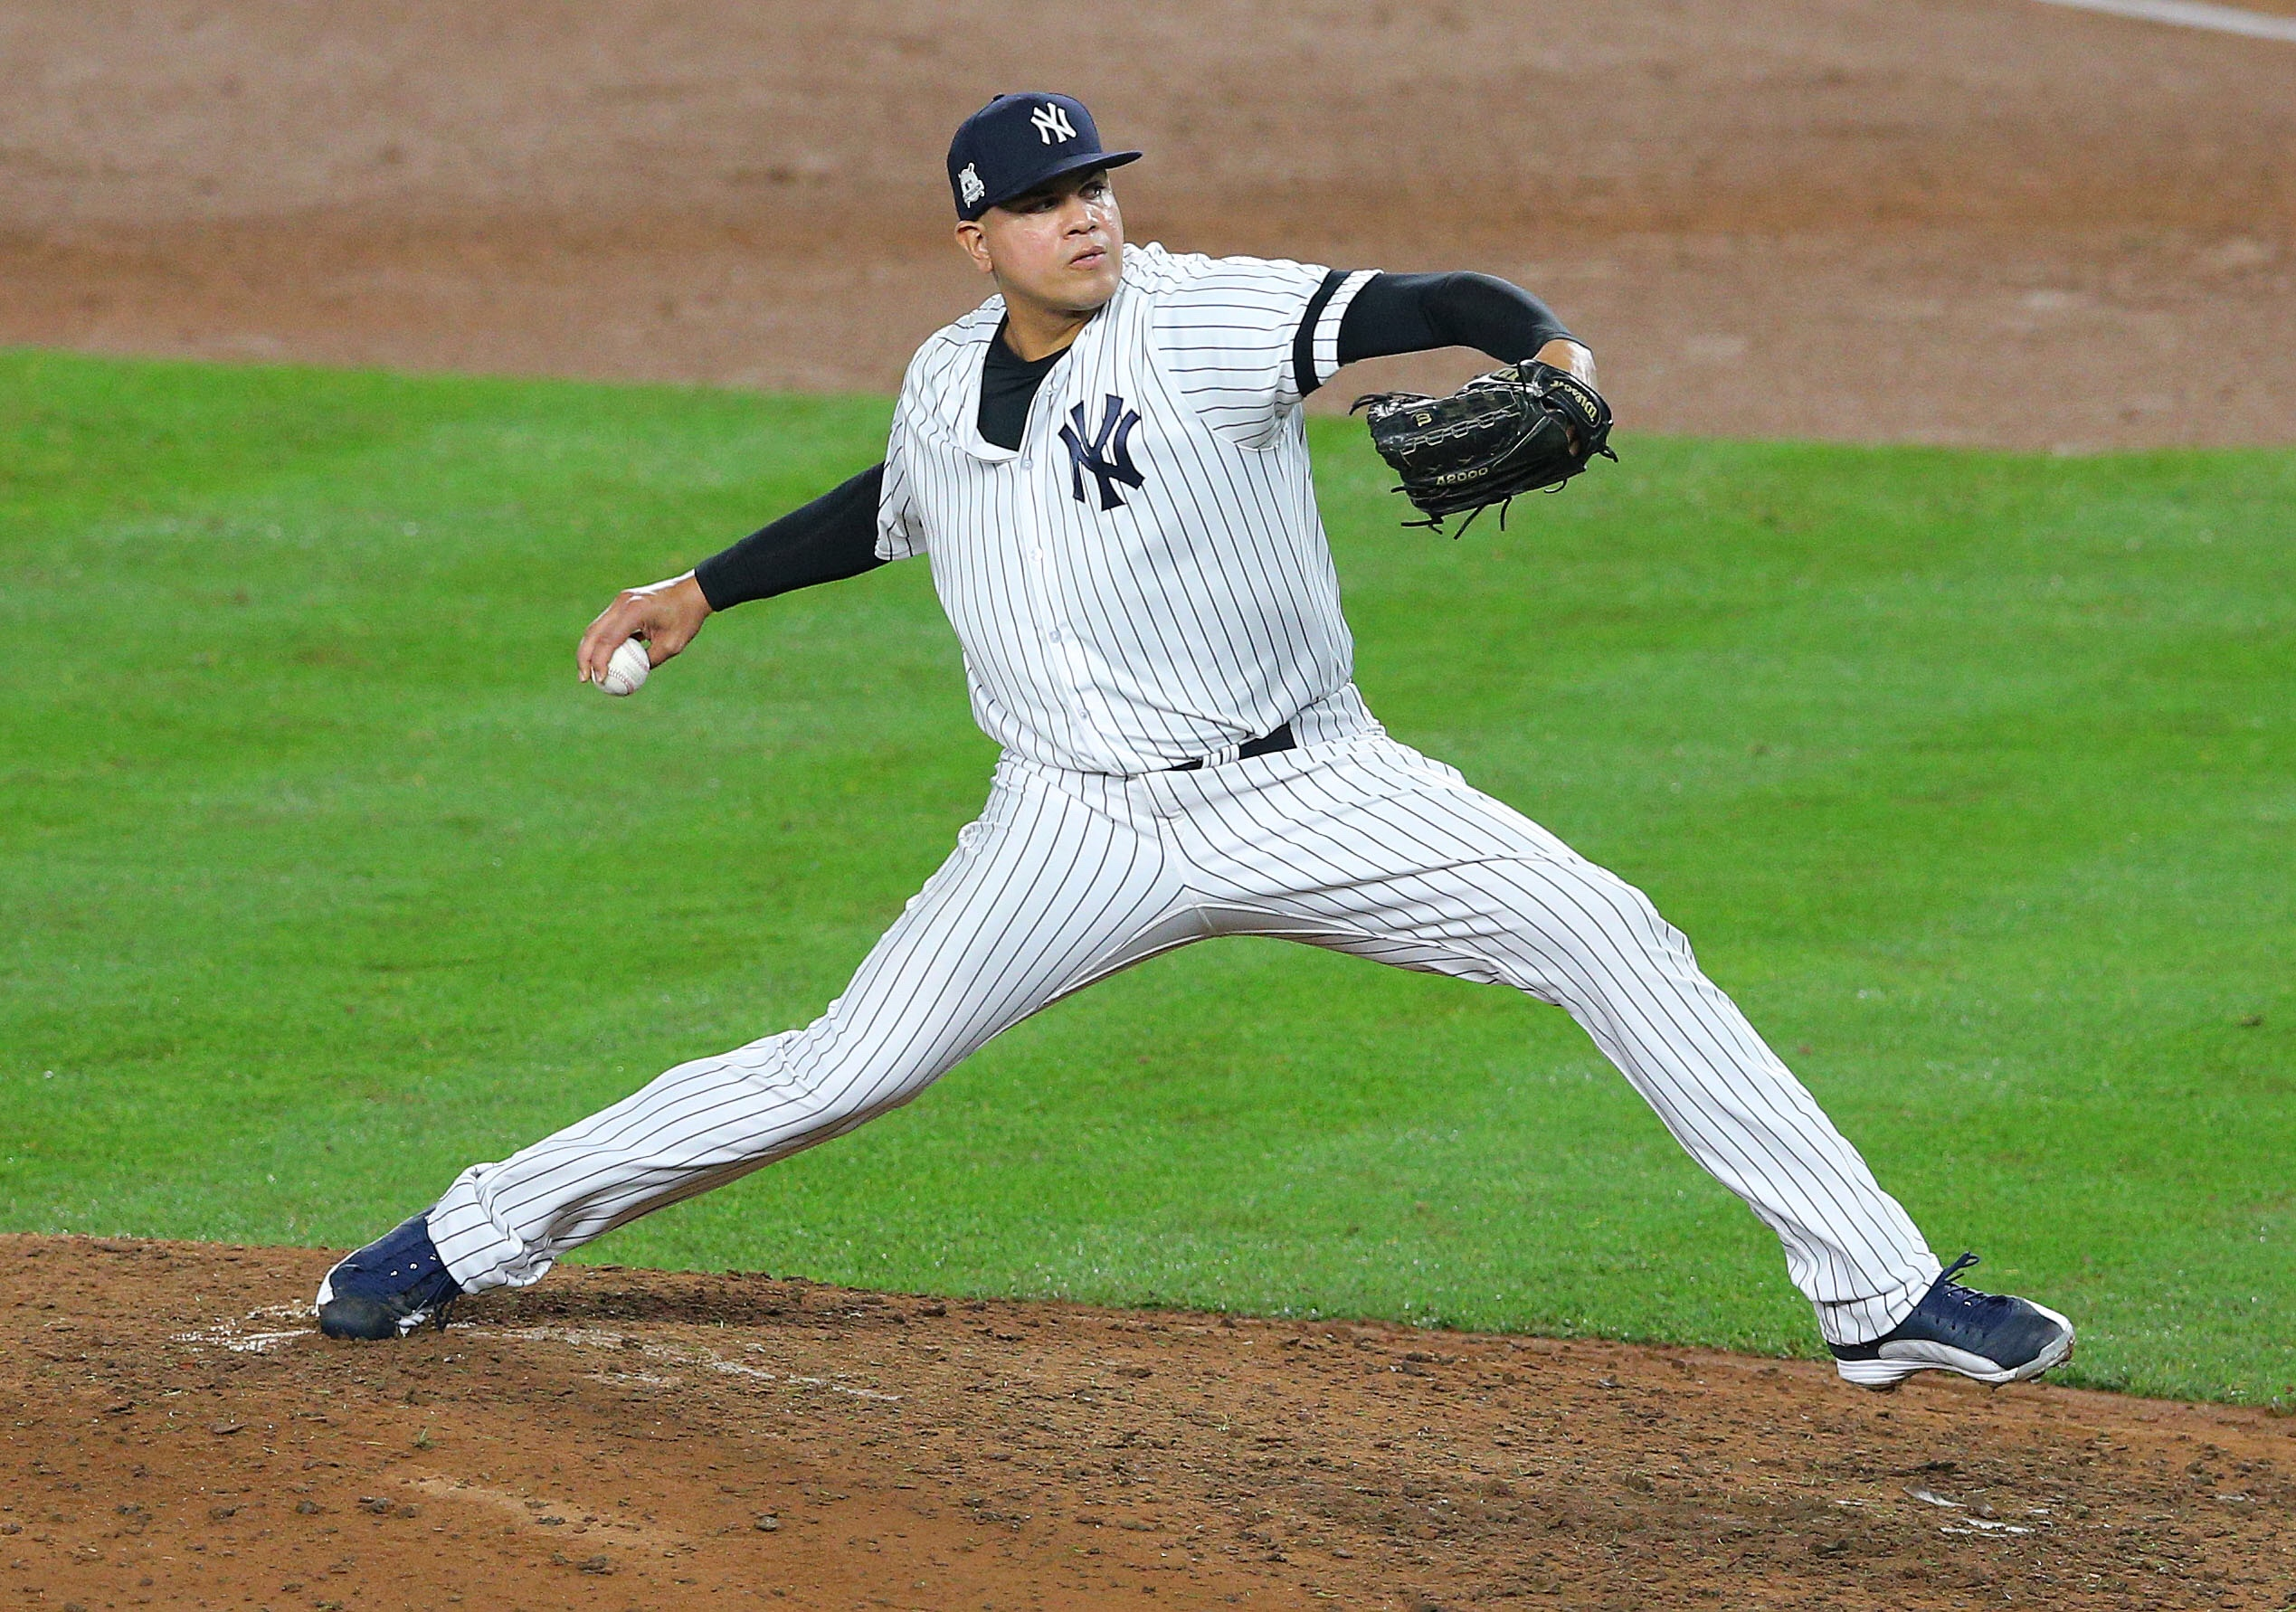 Phillies Are Signing Dellin Betances. I Can Feel It In My Bones